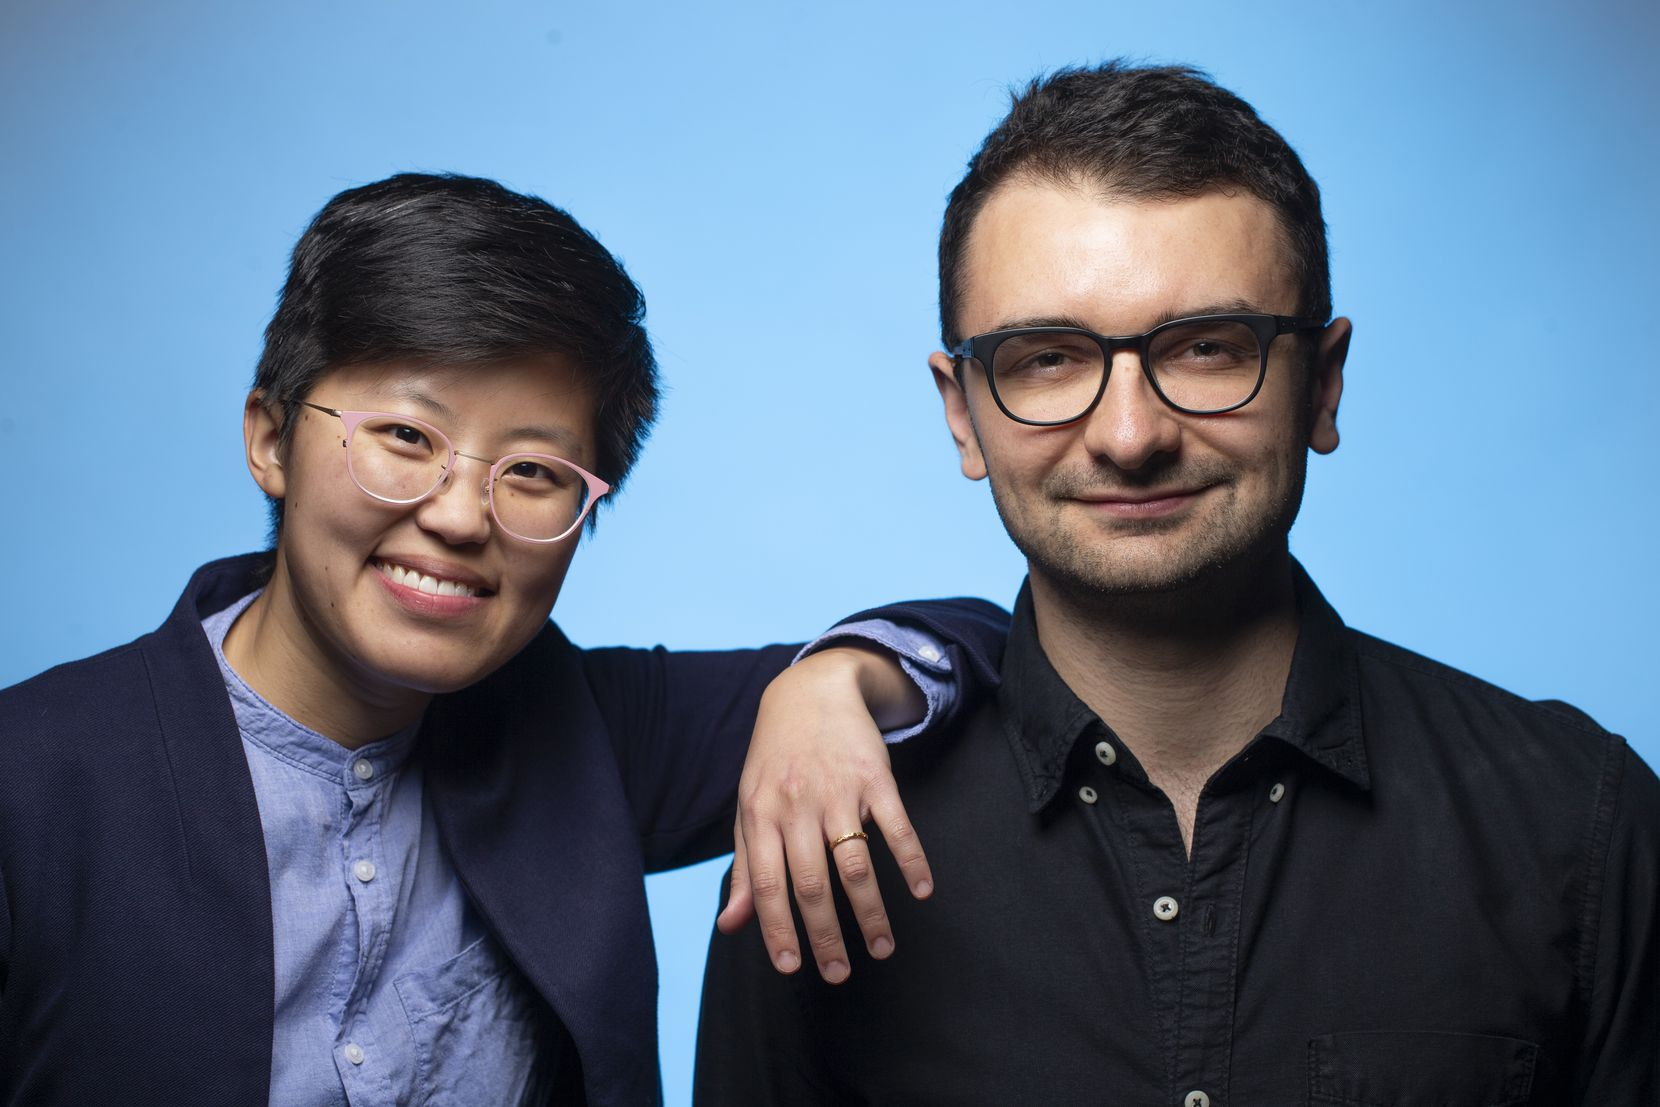 Former 'News' features intern Irena Fischer-Hwang, left, and Tim Diovanni, in 2019 at The Dallas Morning News studio.